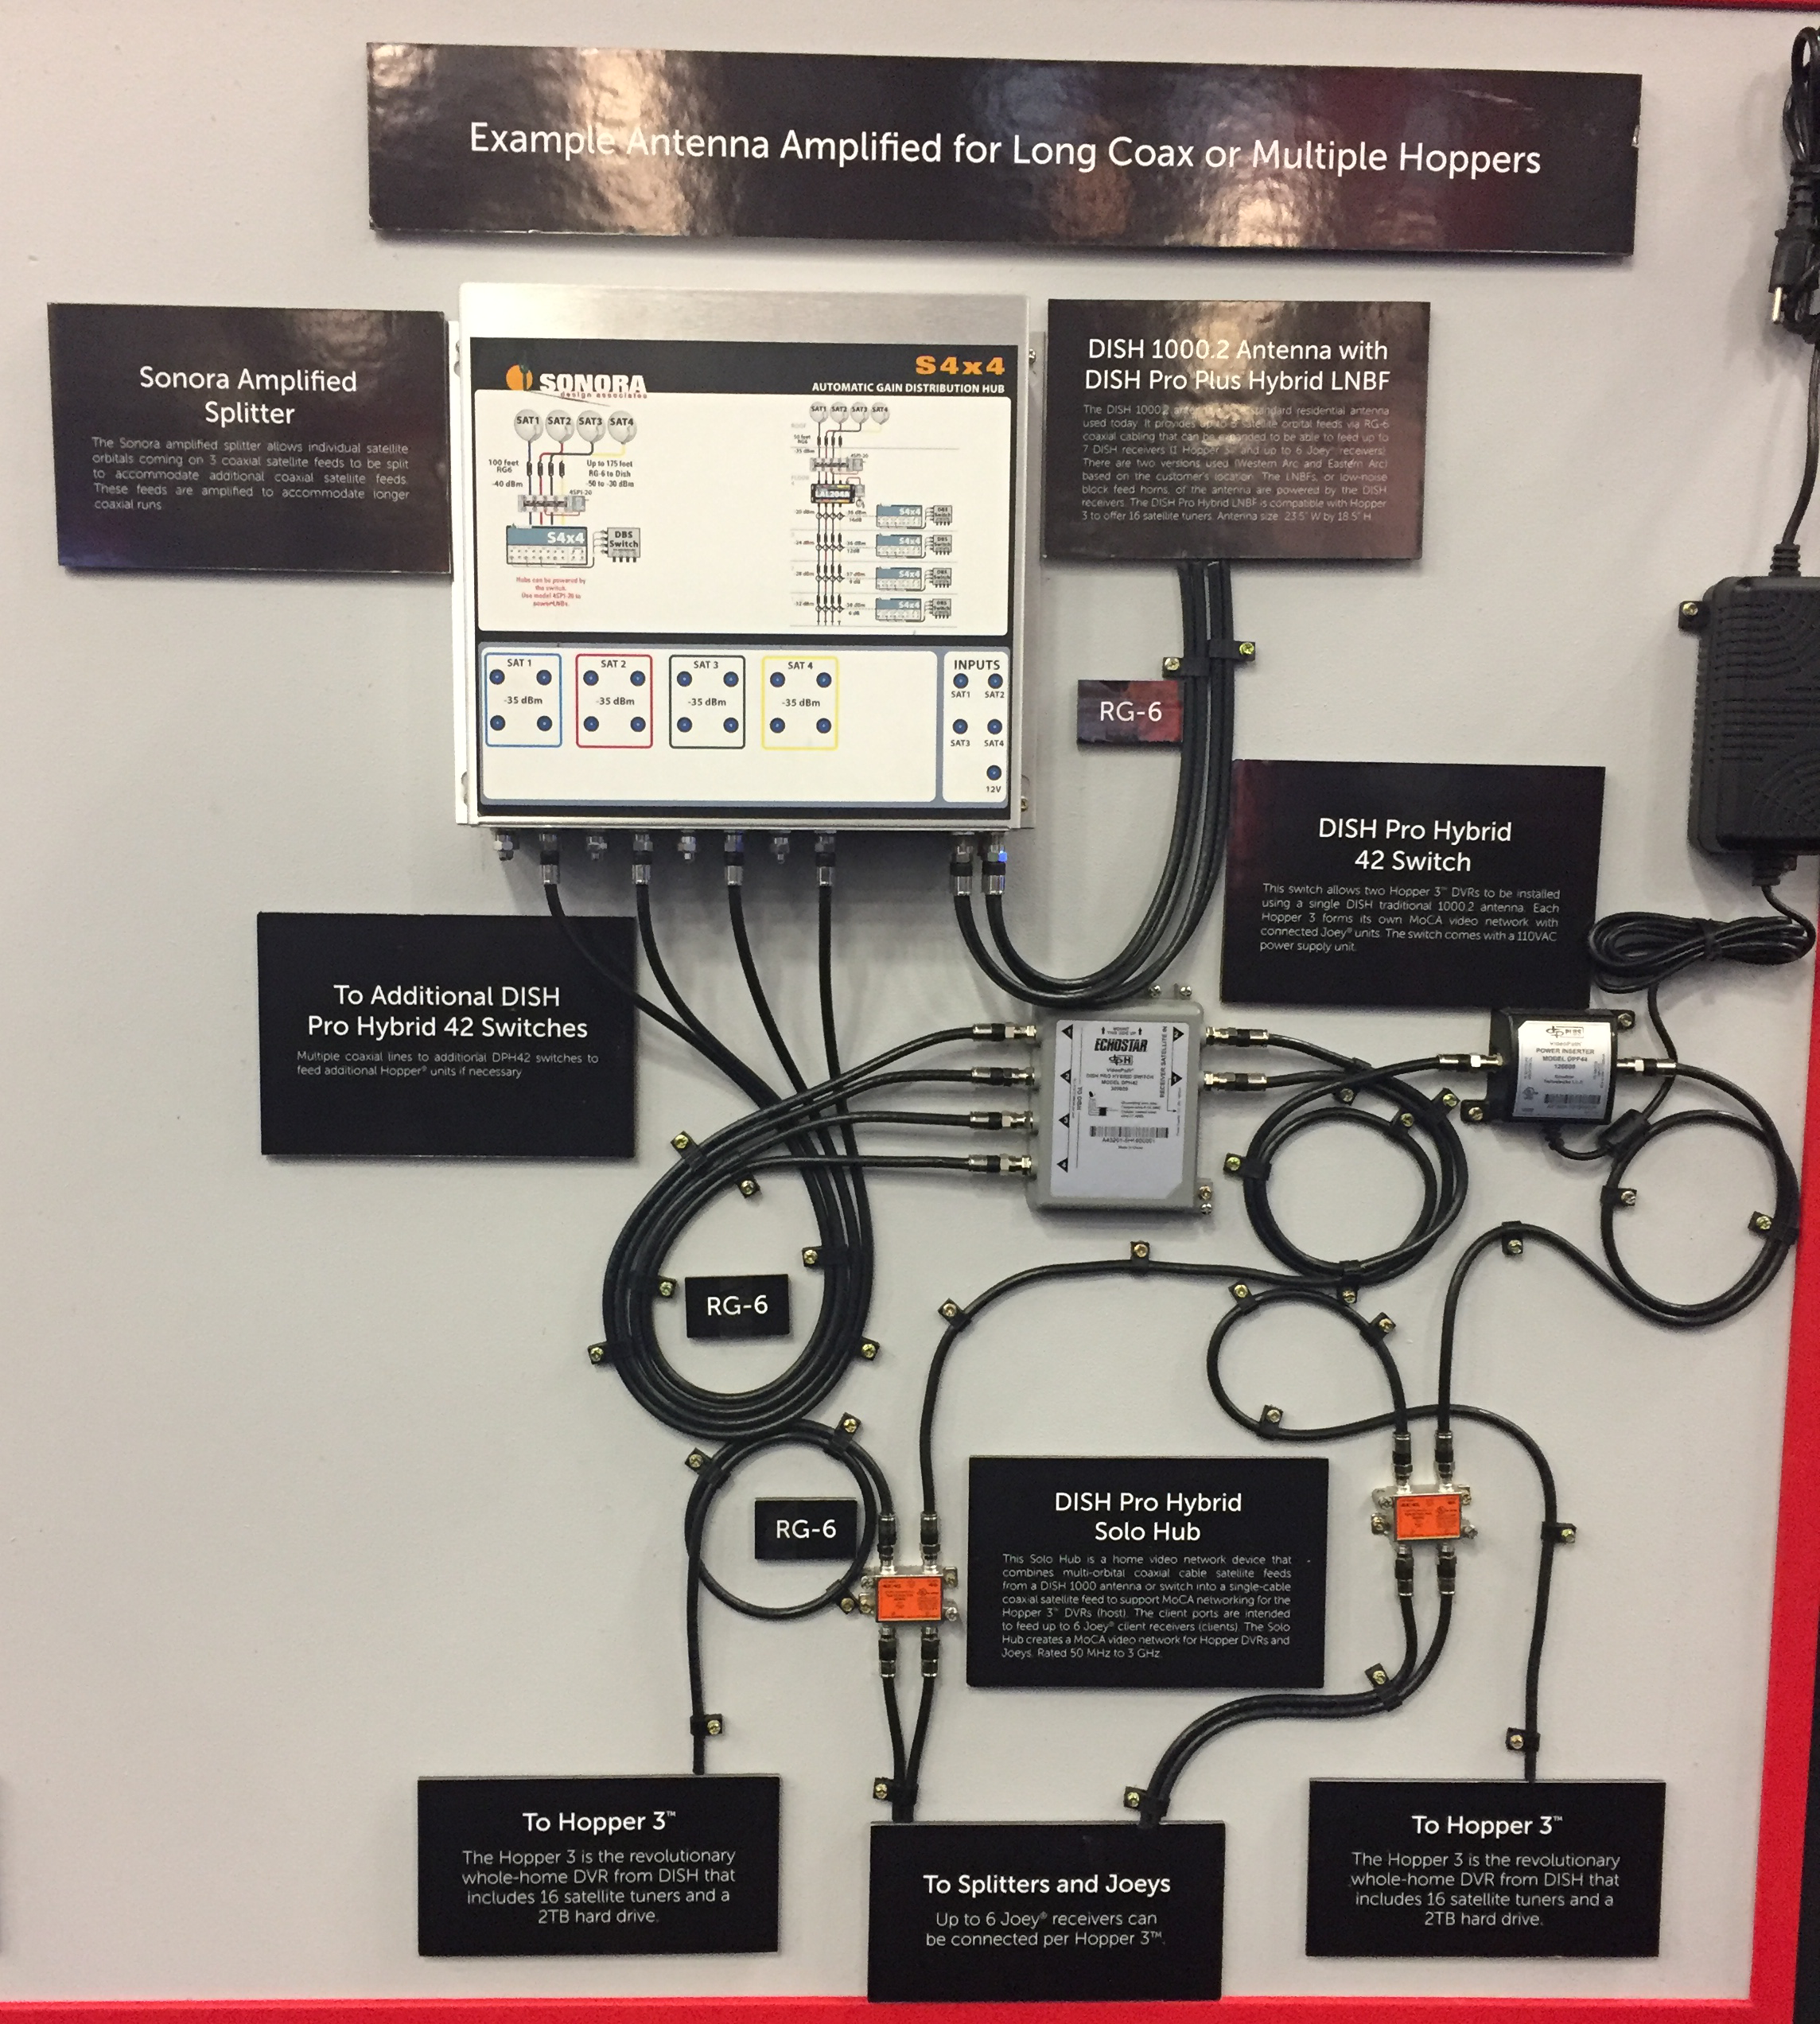 IMG_4910 solid signal blog cedia 2016 dish shows dph42 hybrid switch dish pro plus wiring diagram at aneh.co